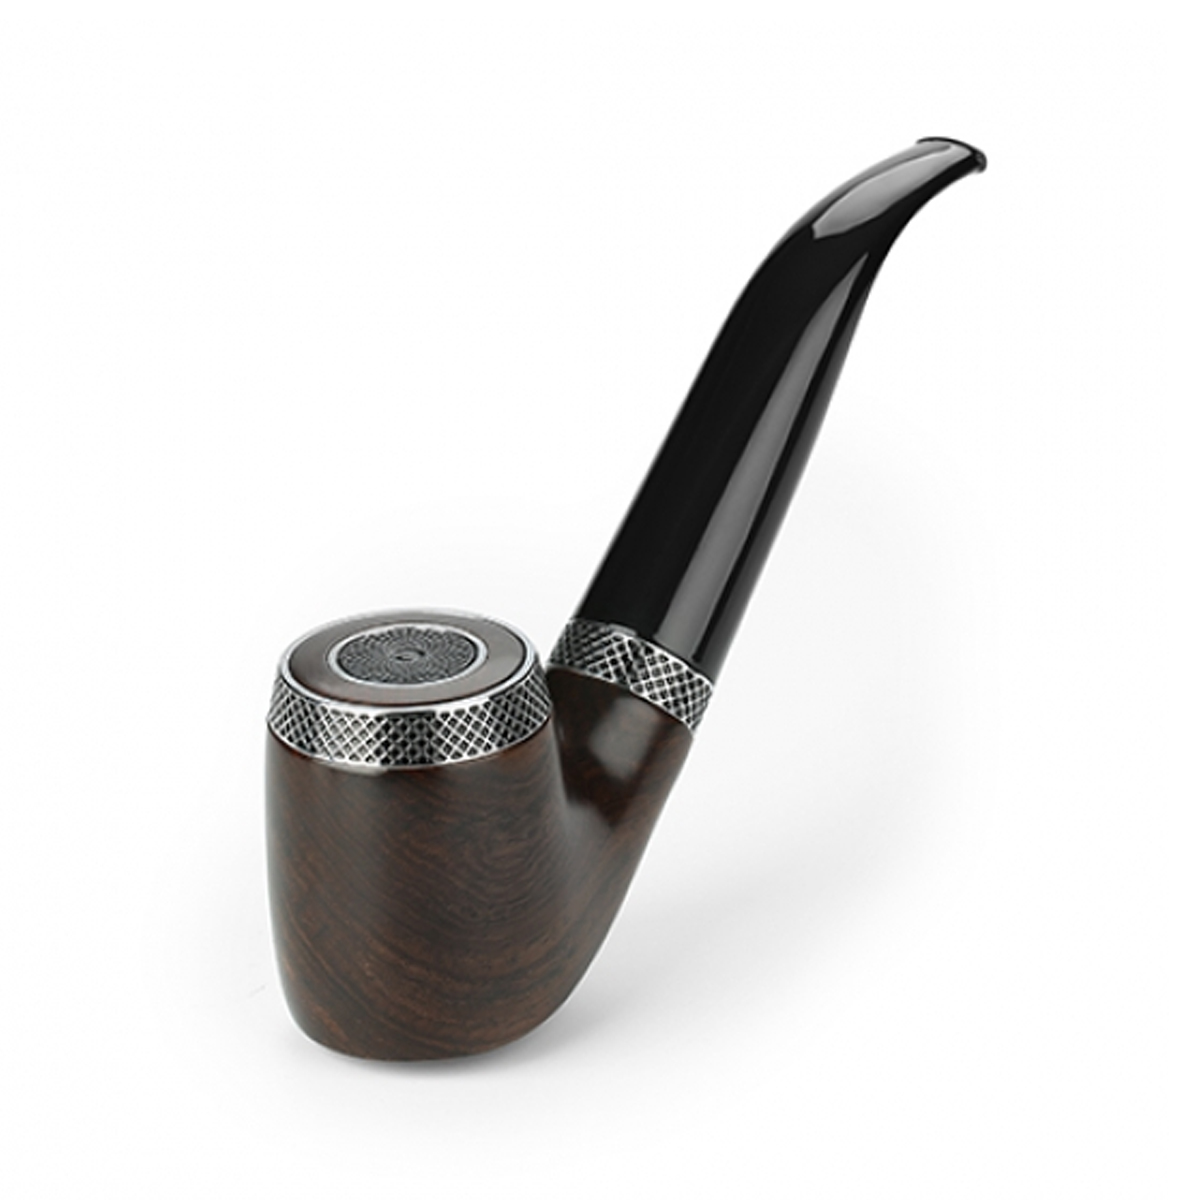 VapeOnly vPipe 3 Ebony e-Pipe - 1300mAh